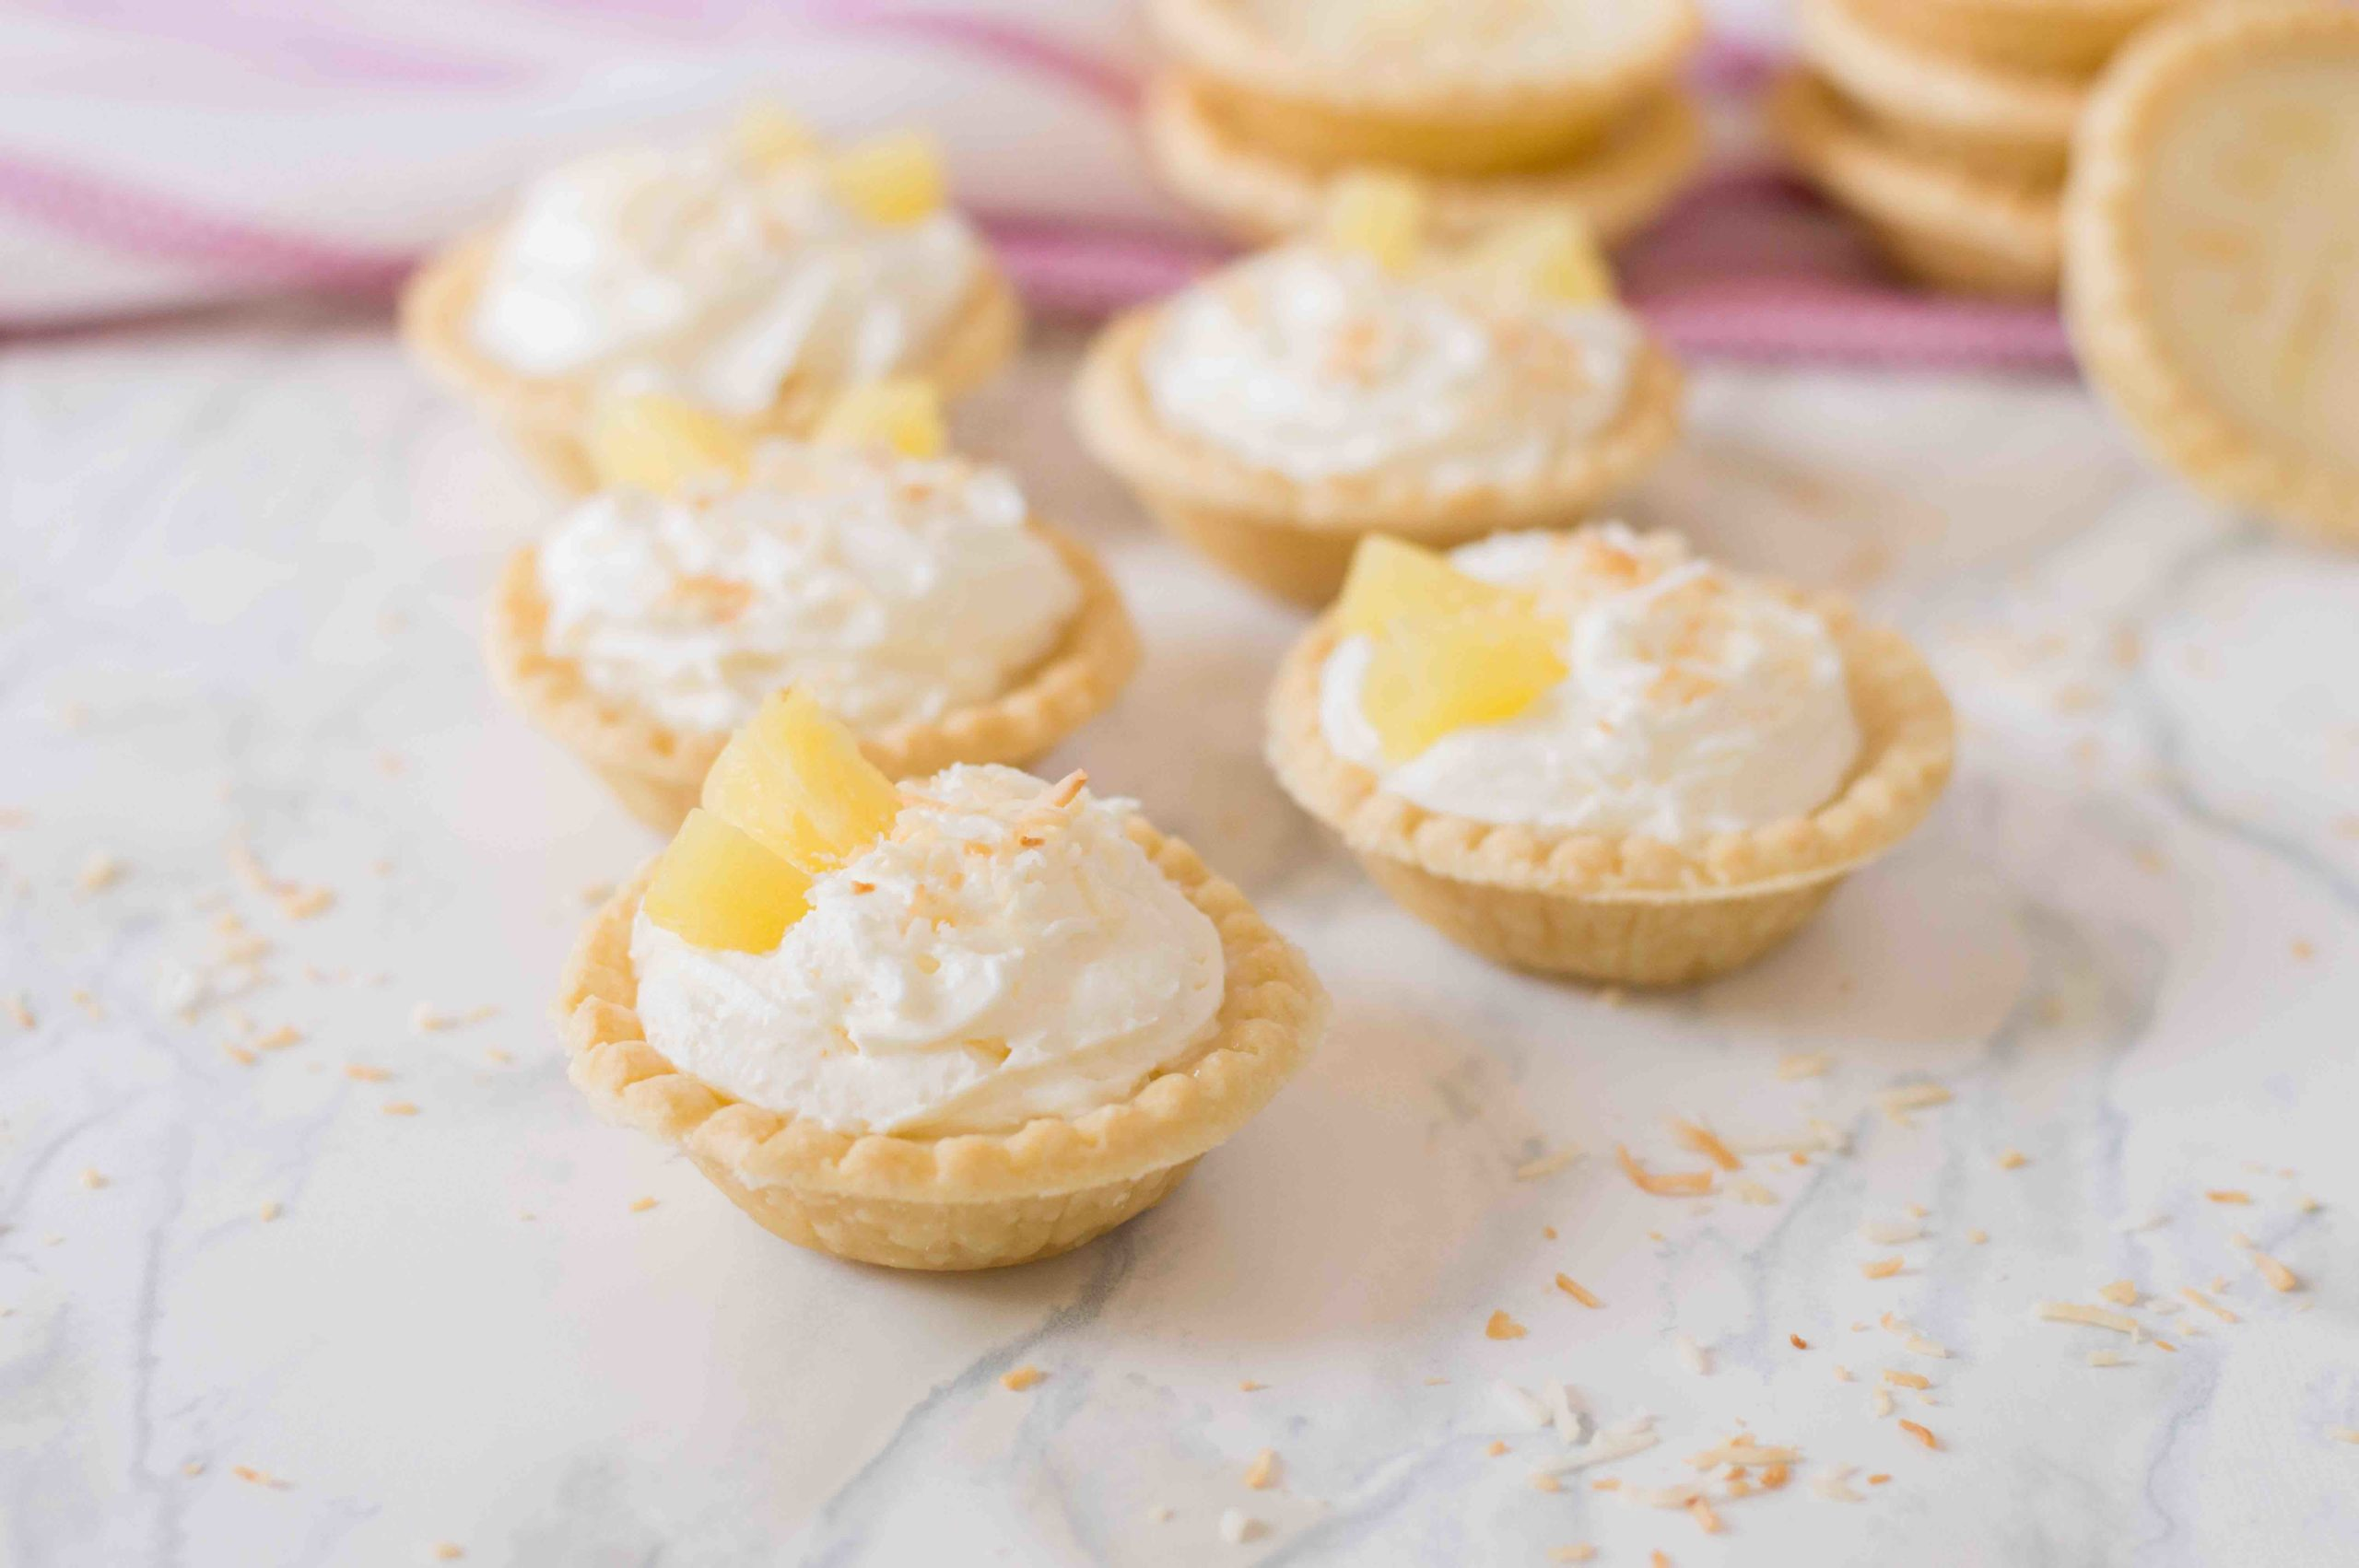 Pineapple Dessert Recipe Roundup by top Hawaii blog Hawaii Travel with Kids: Pineapple Tarts Recipe